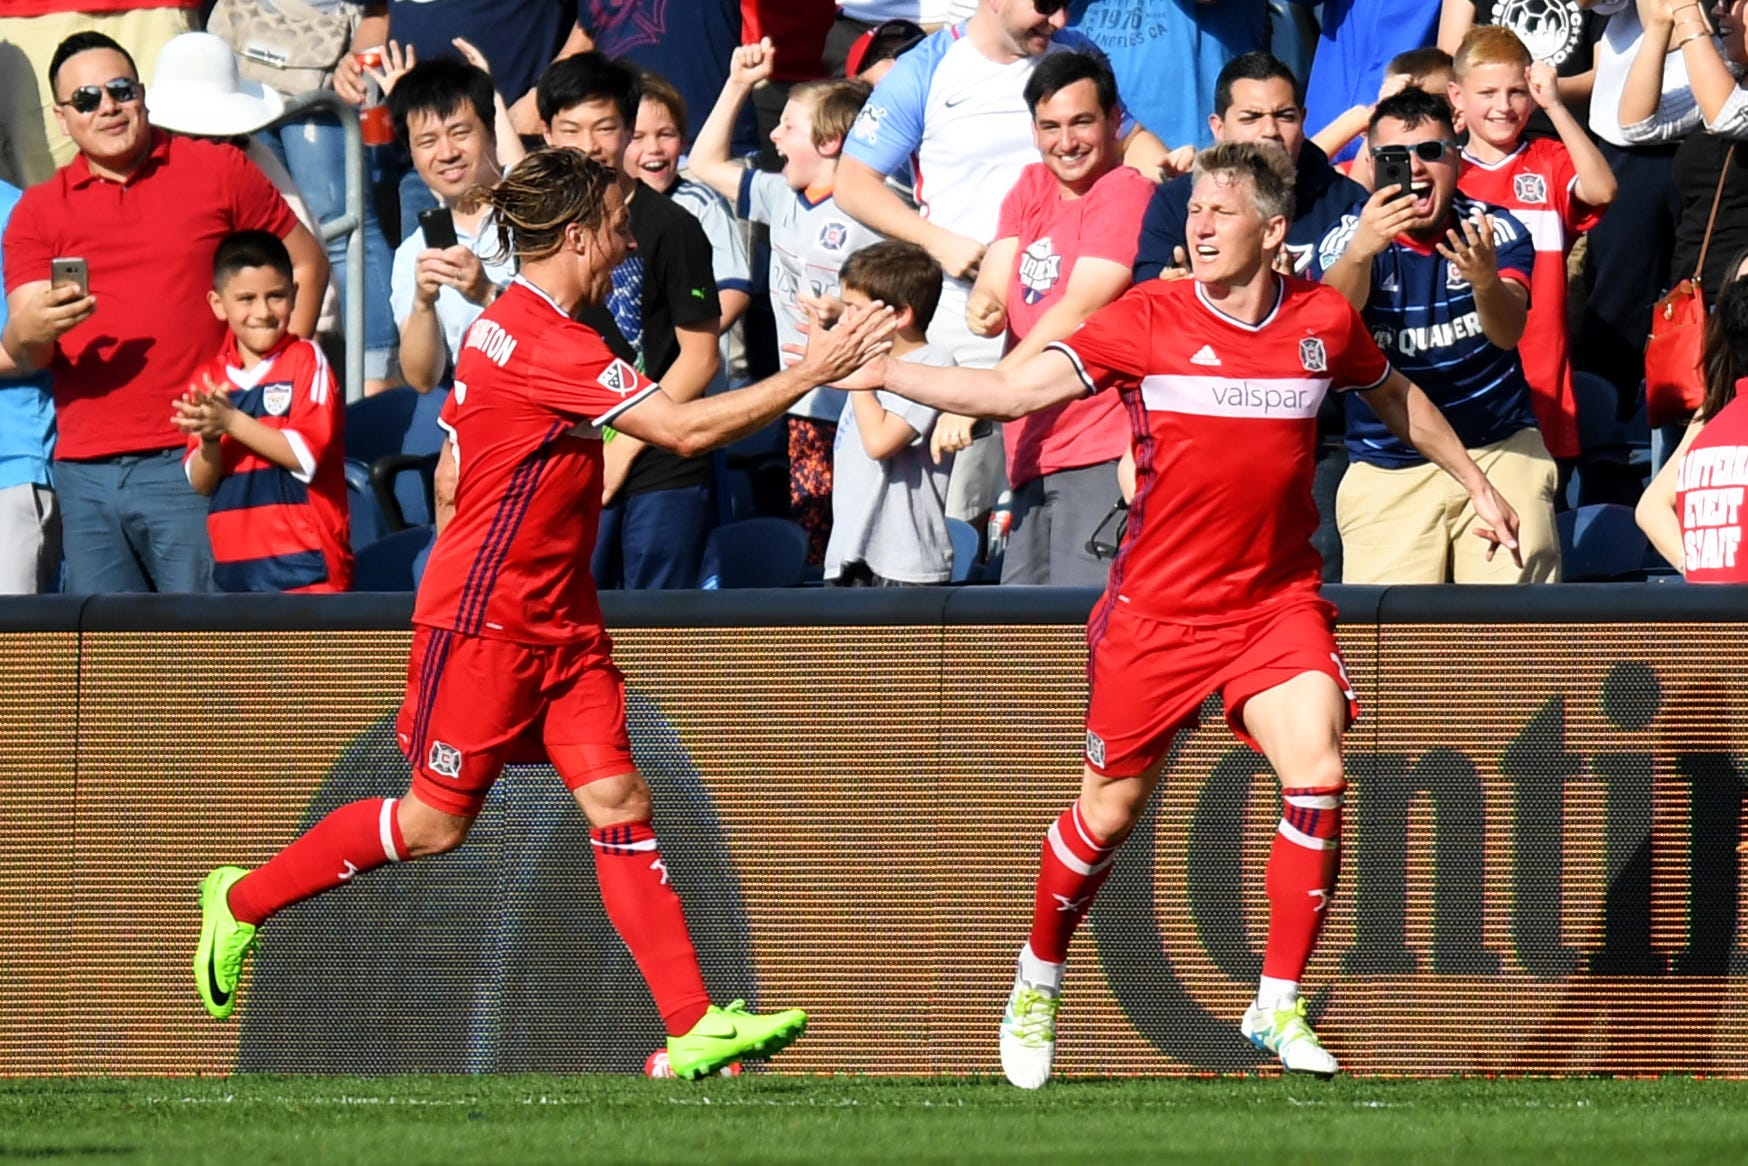 Bastian Schweinsteiger, Nemenja Nikolic lead Chicago Fire to win over New England Revolution